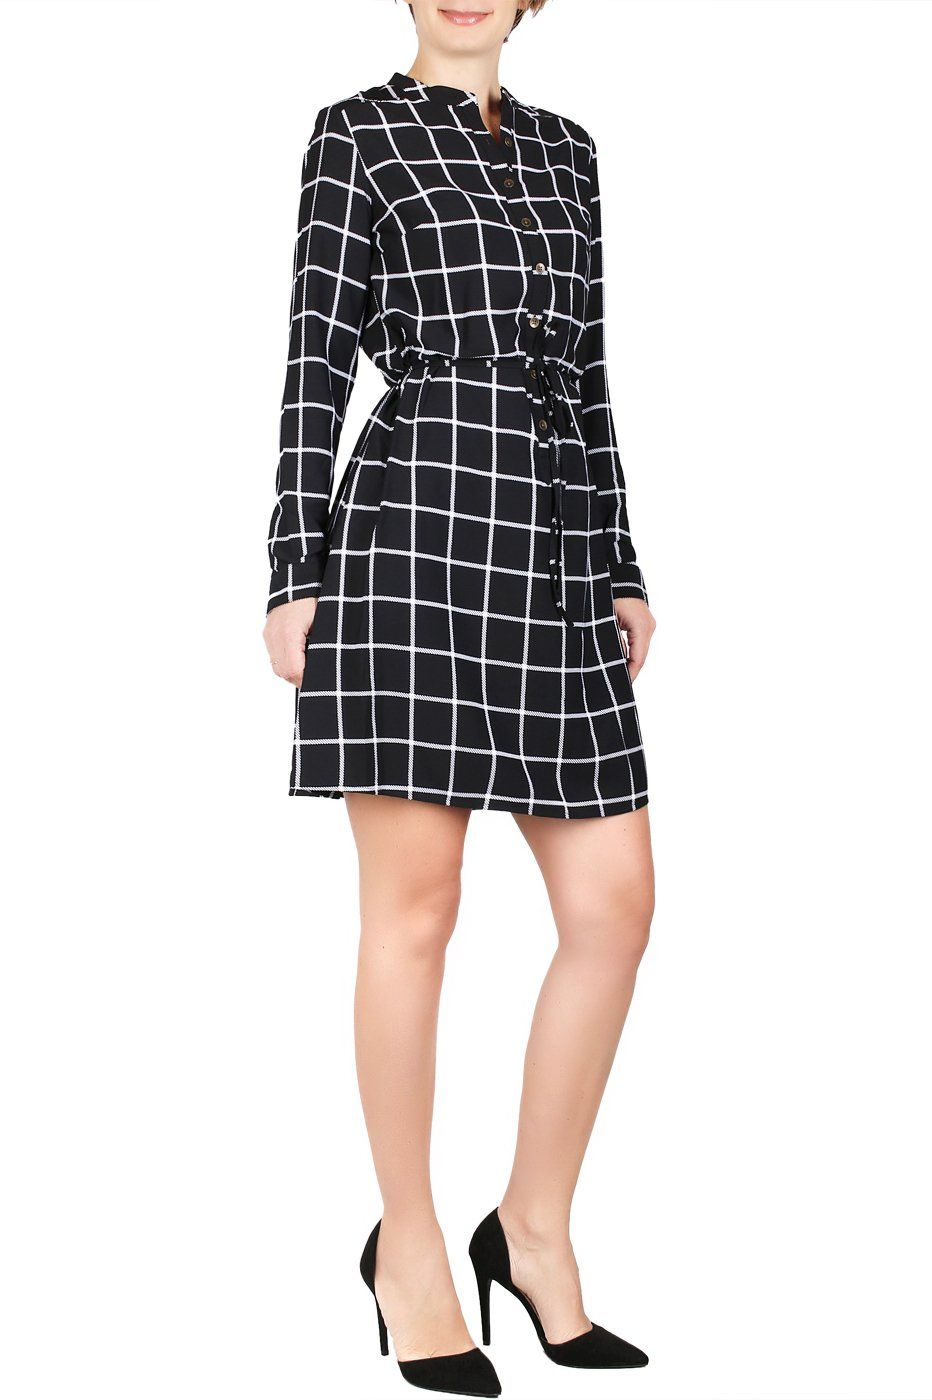 Maternity outfits smart maternity dresses bodilove womens long